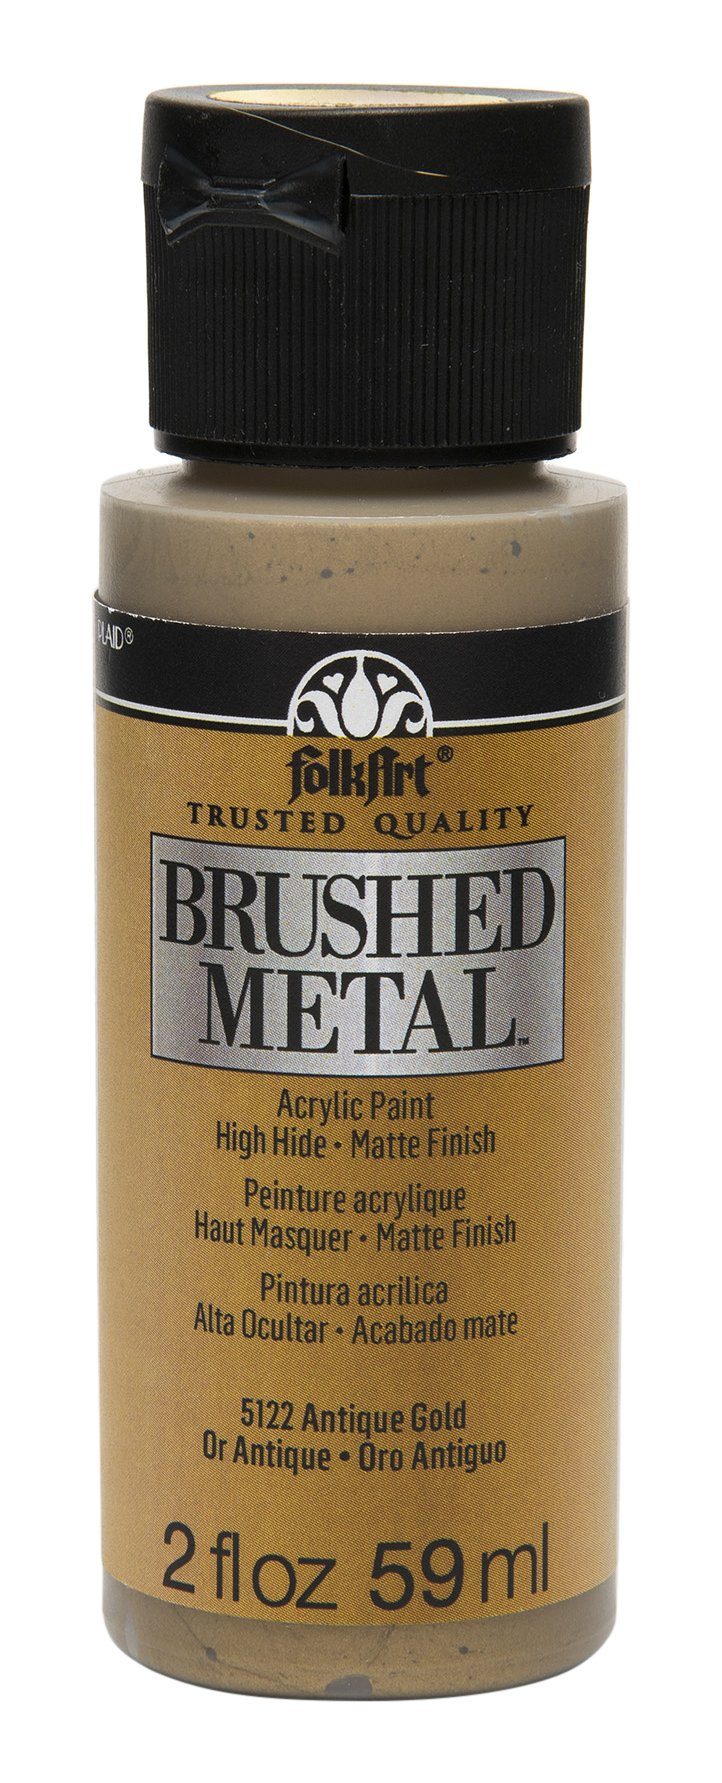 FolkArt Brushed Metal Paint in Assorted Colors (2 oz), Antique Gold